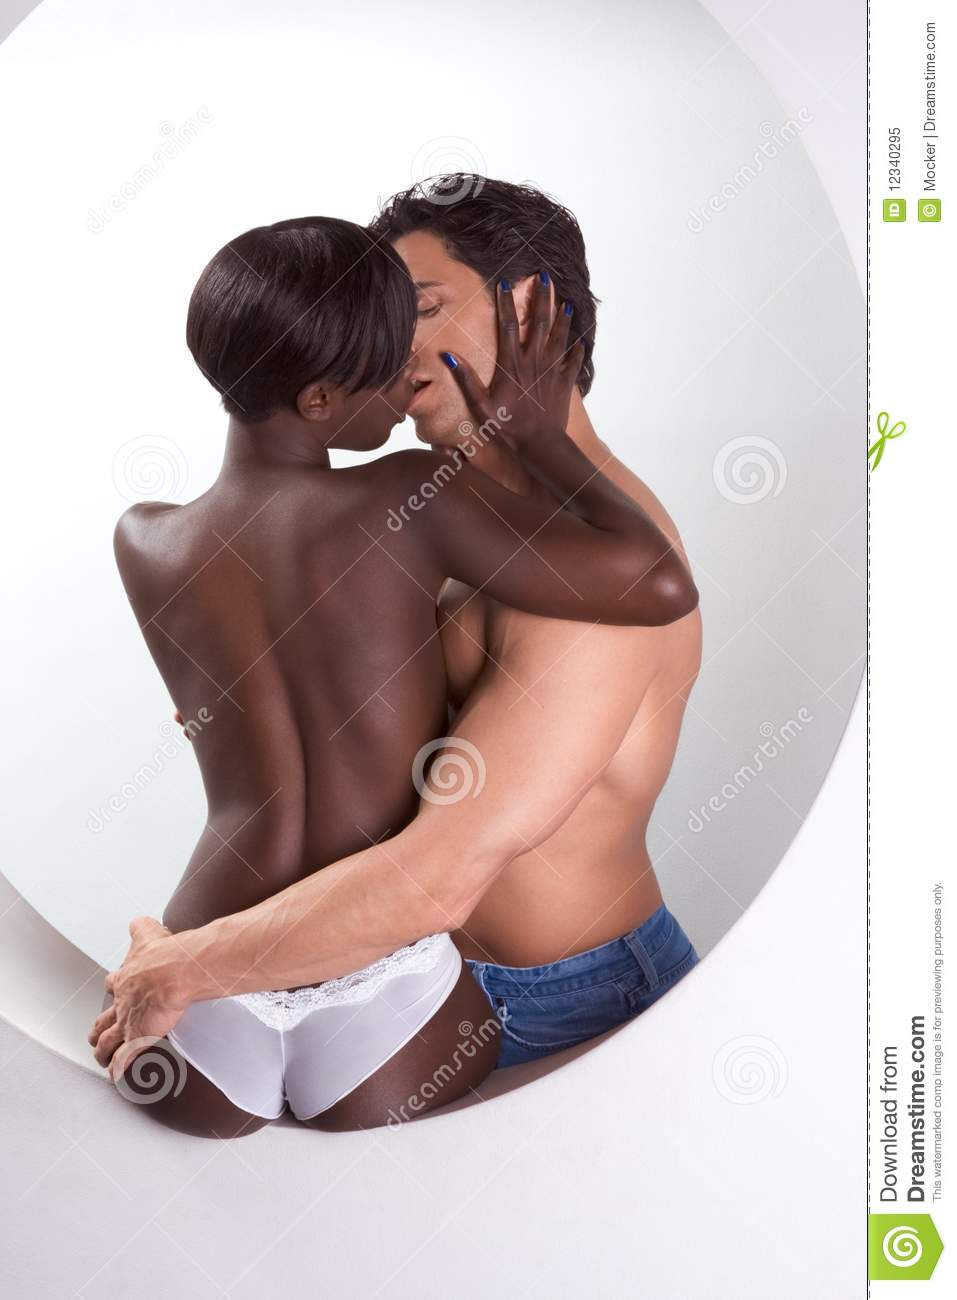 naked woman and men sex